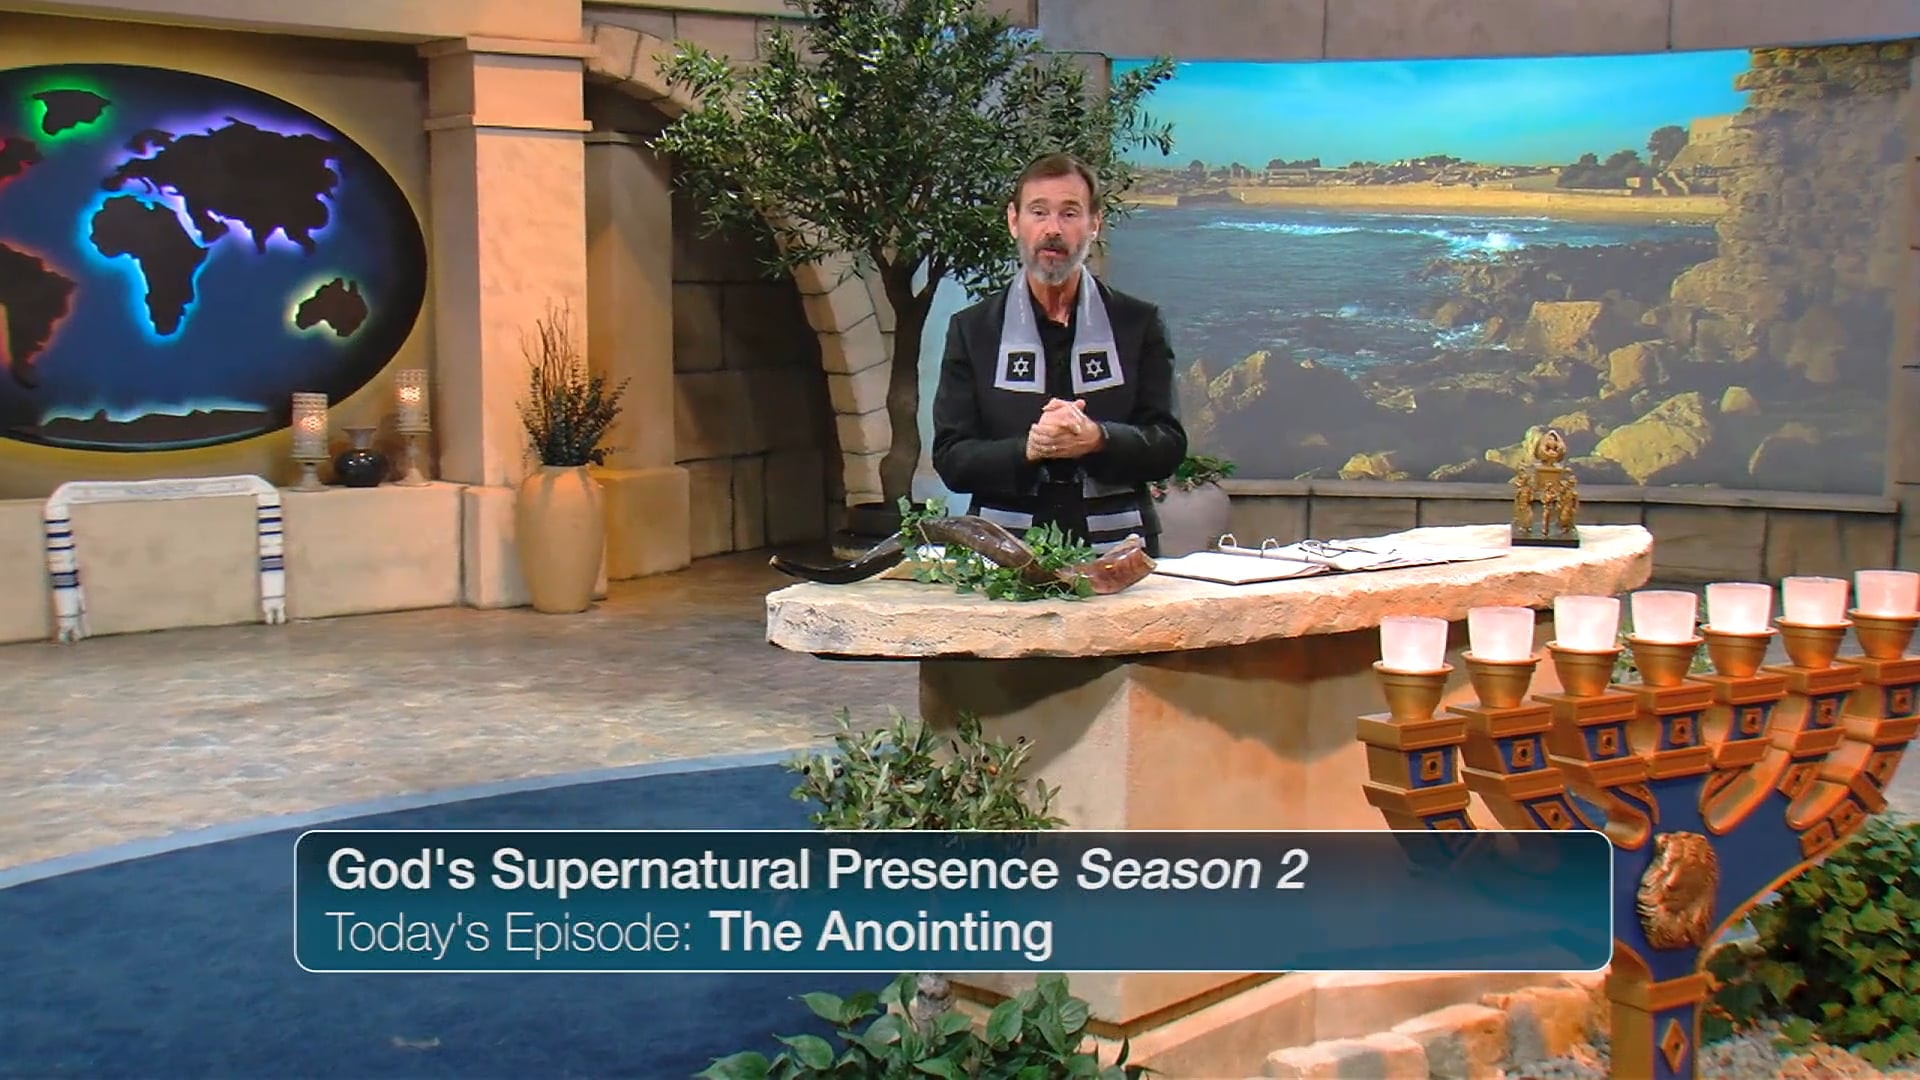 Watch God's Supernatural Presence Season 2 - The Anointing